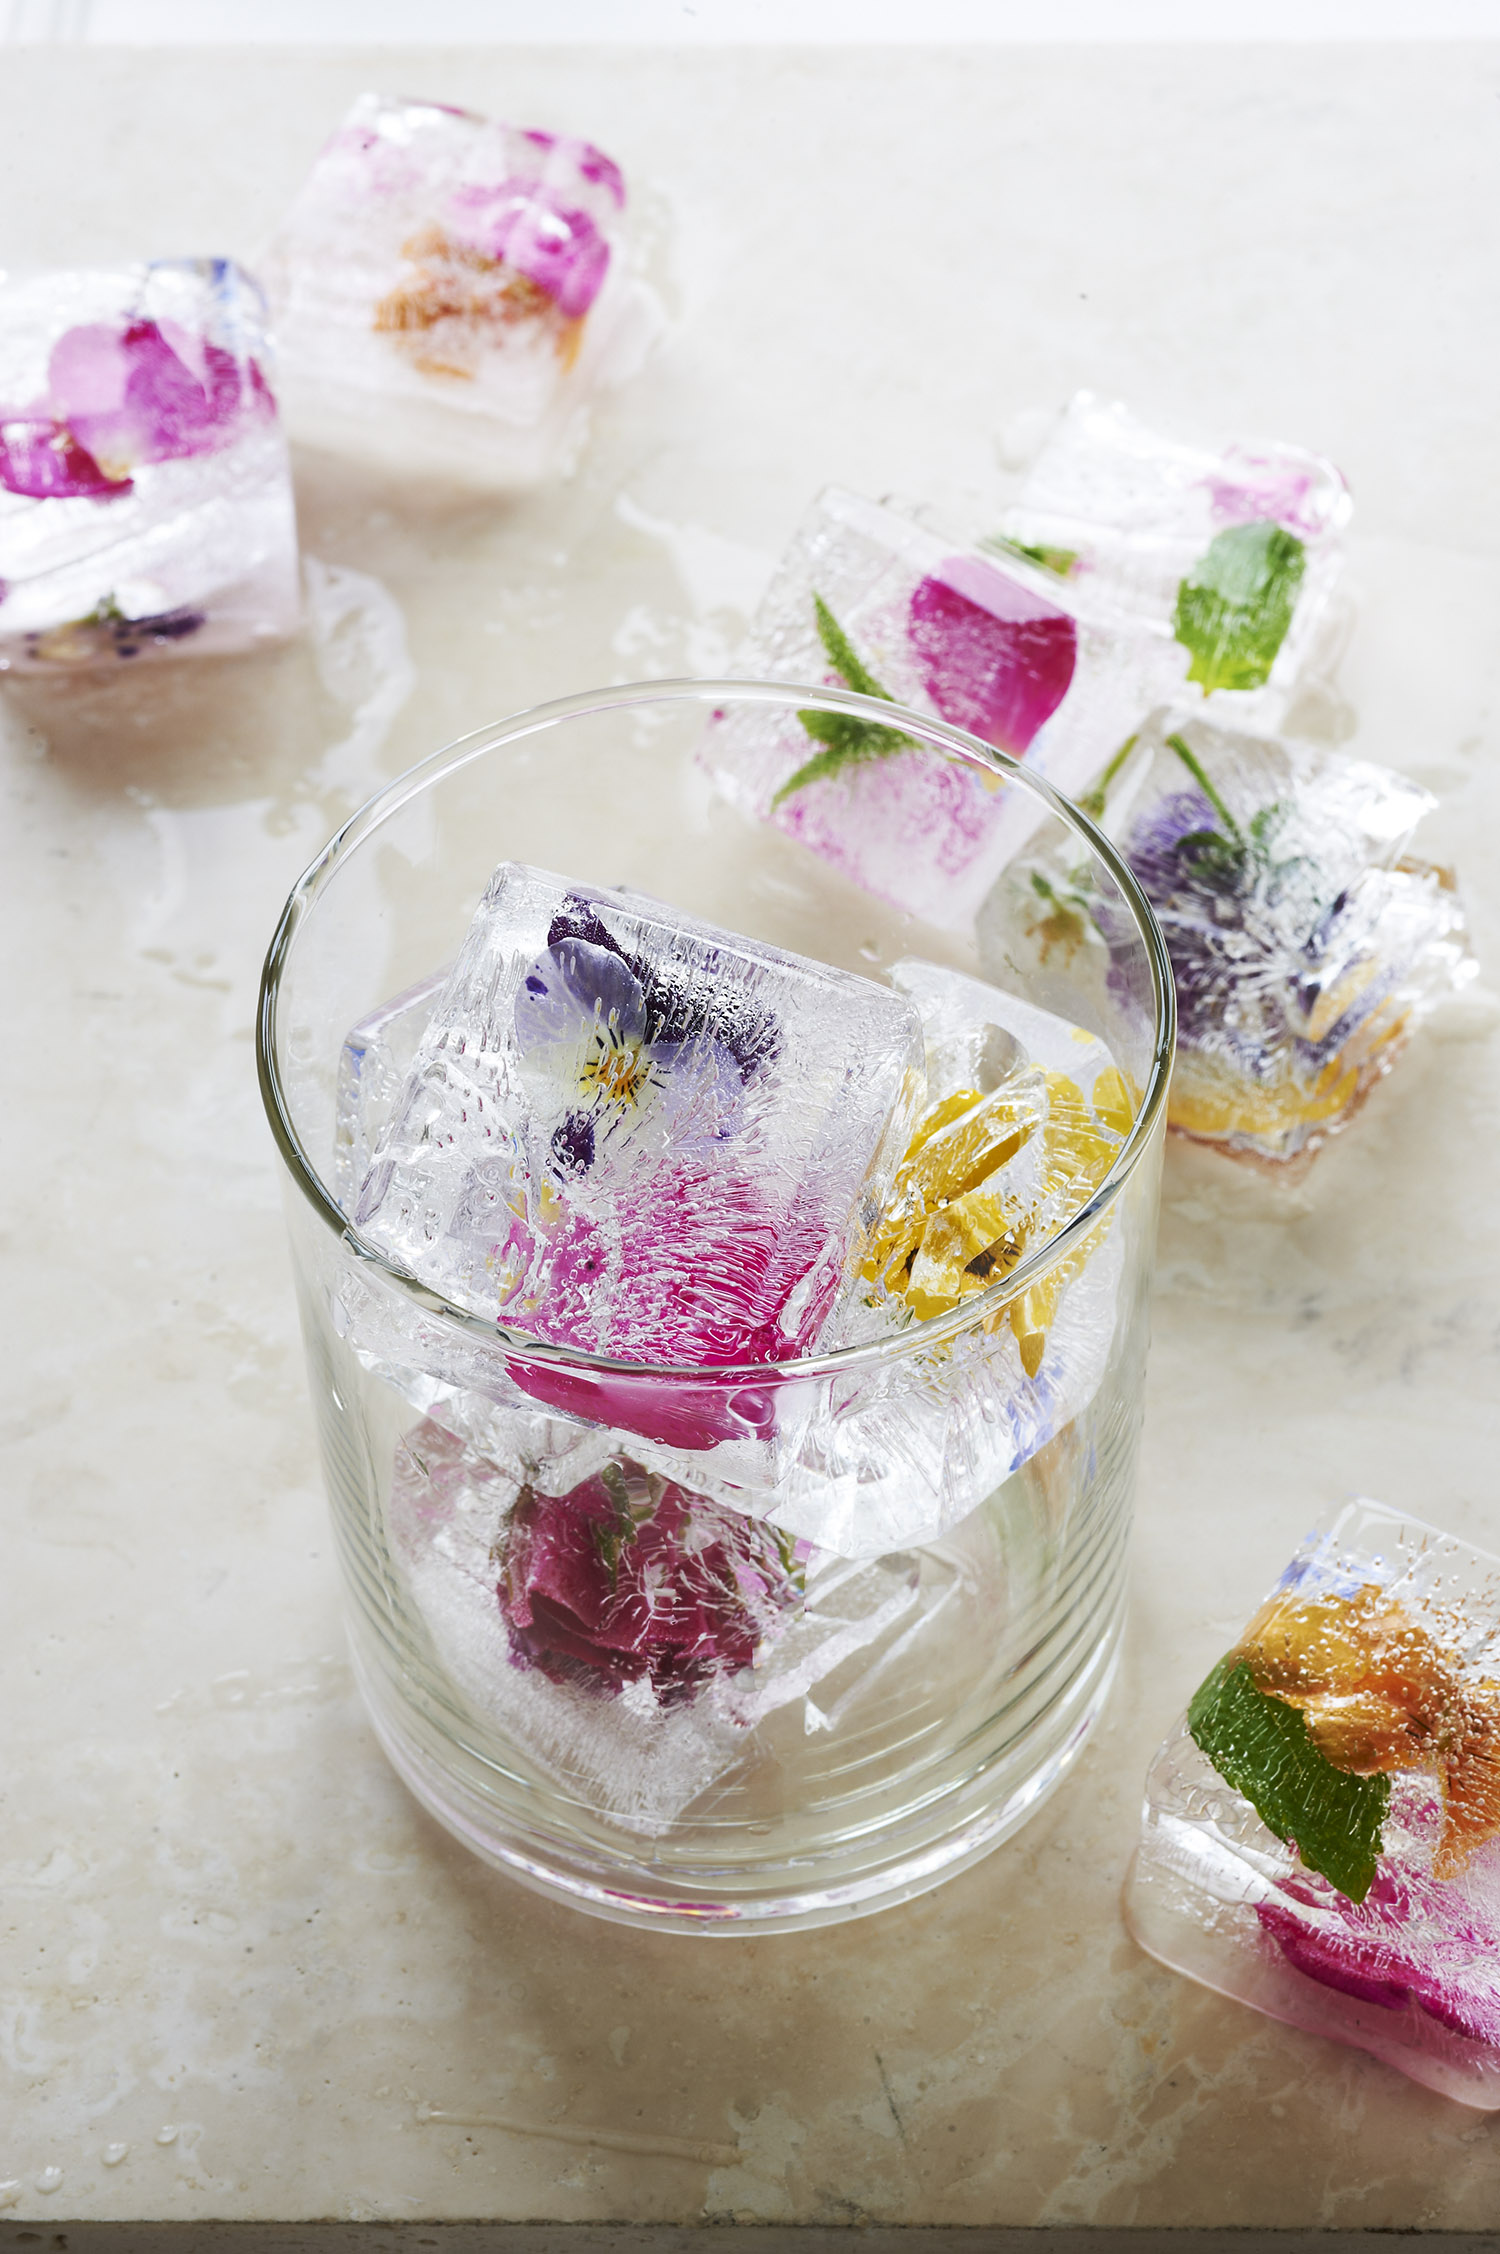 Flower Ice Cubes.jpg